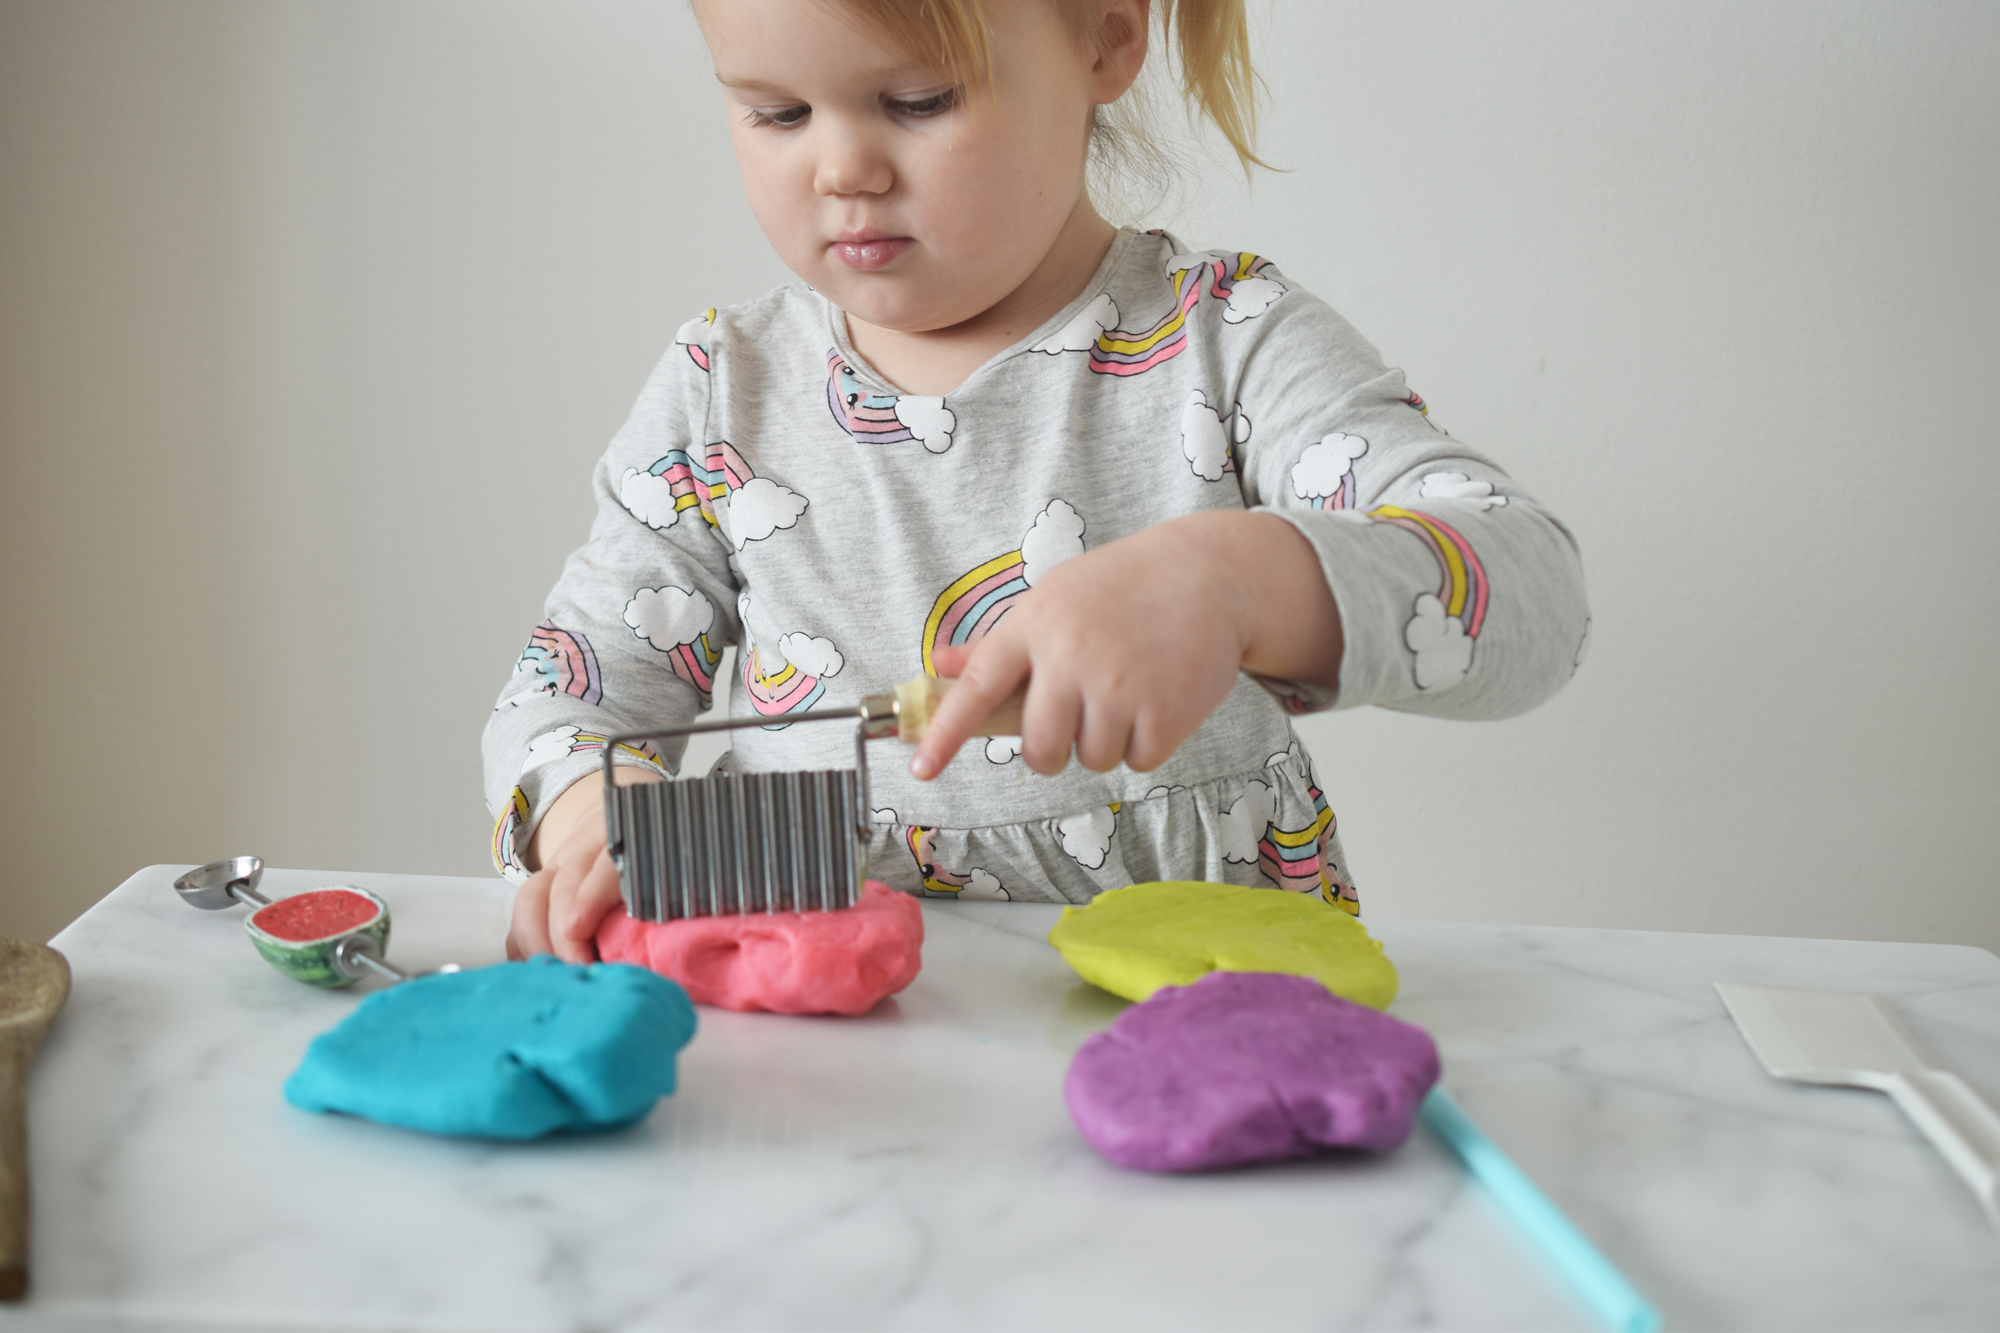 toddler playing with homemade playdough